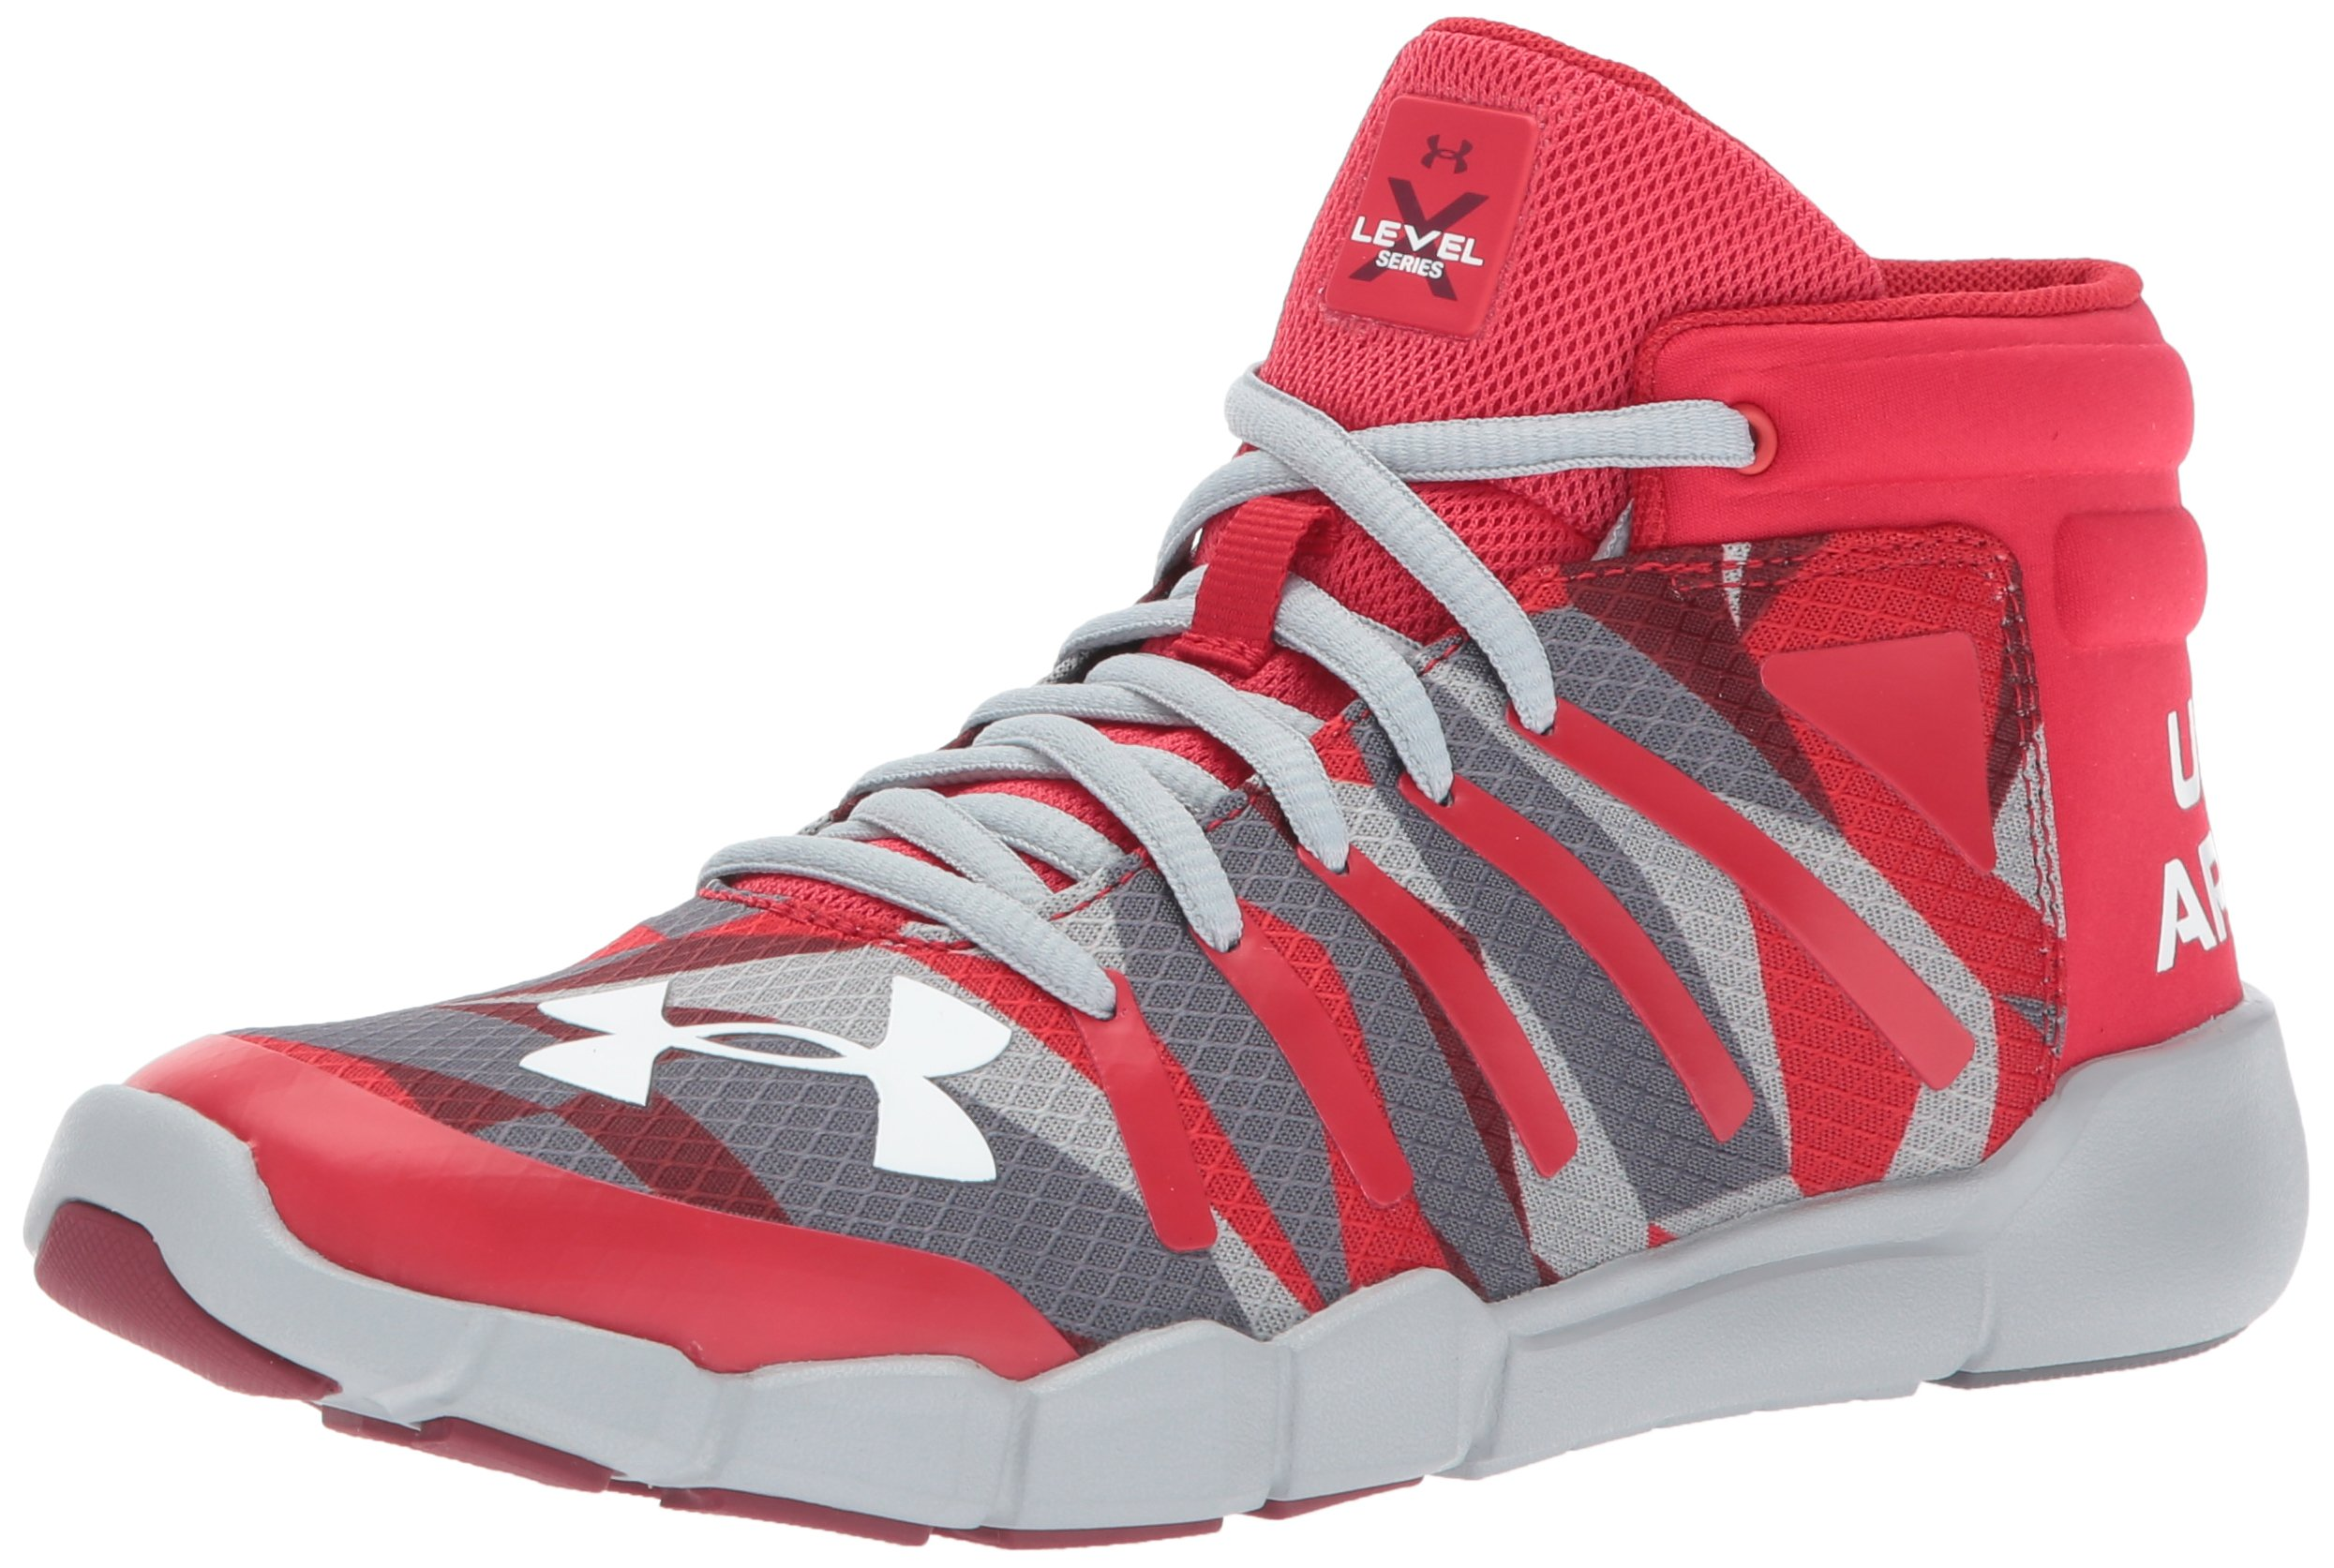 Under Armour Boys' Grade School X Level Destroyer Ankle Boot, Red, 6 by Under Armour